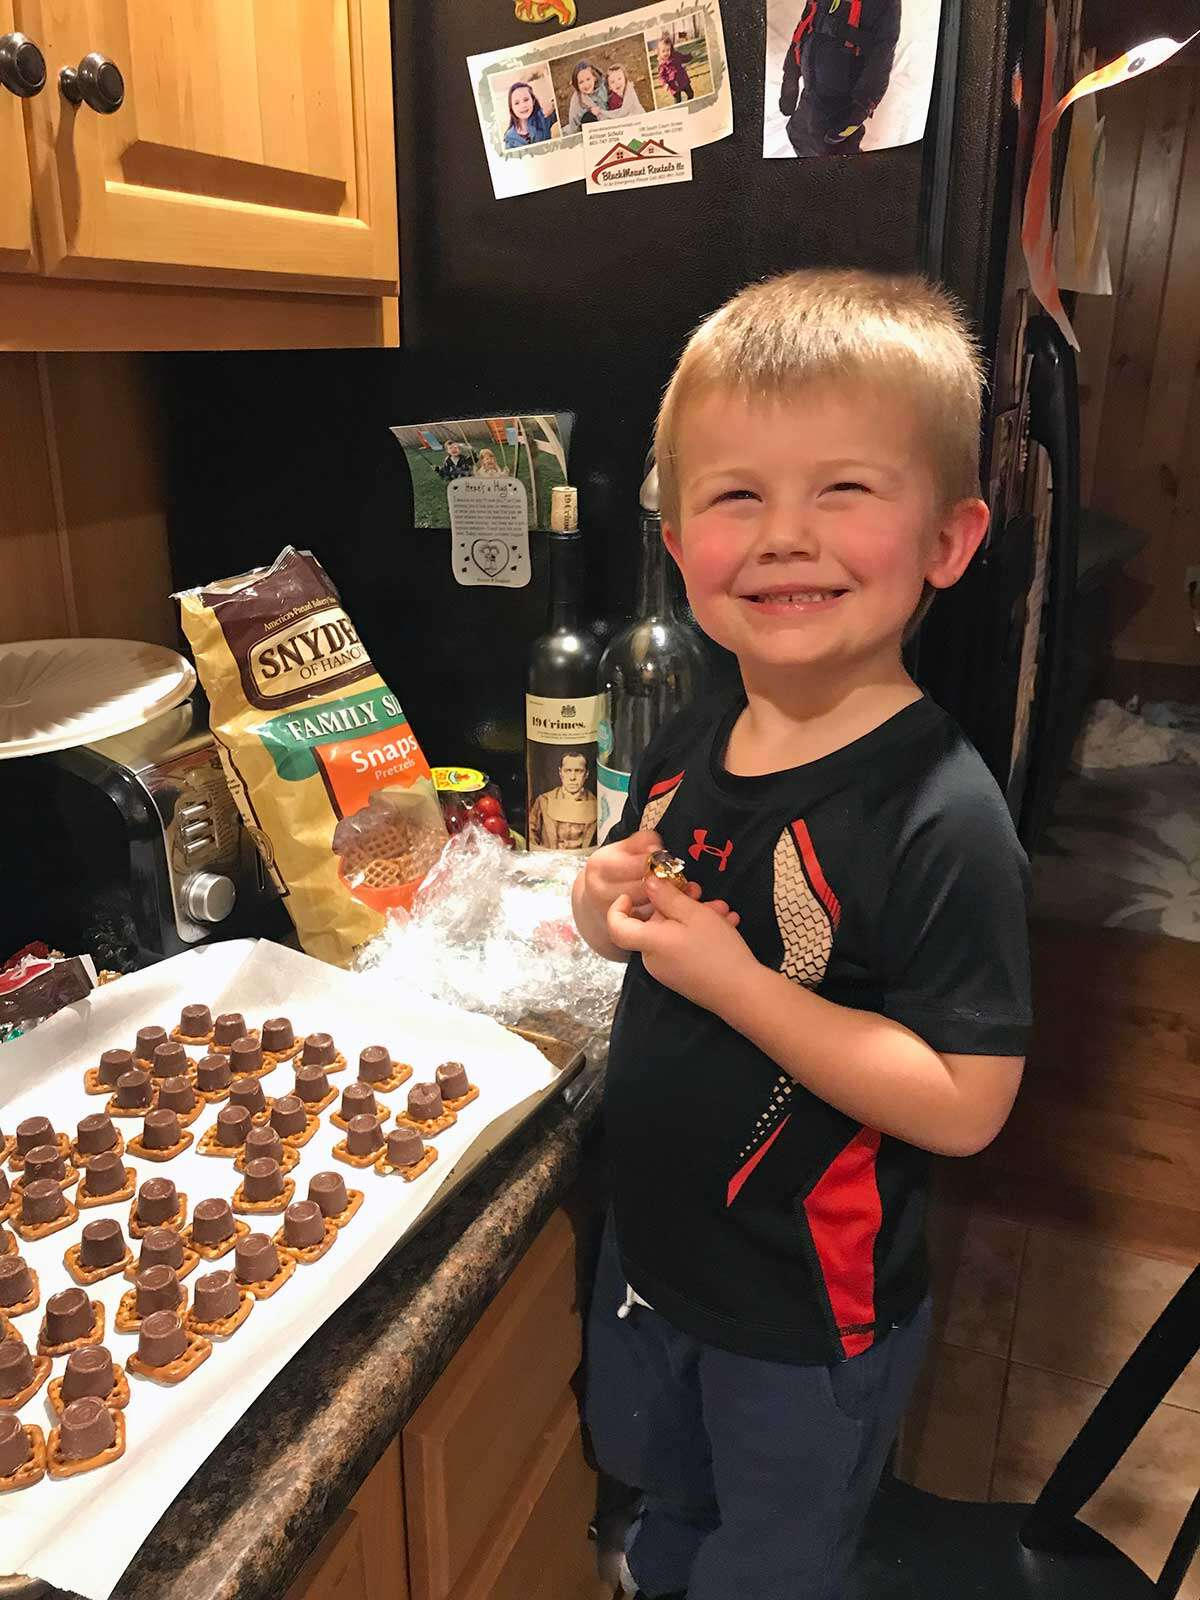 A small child making no-bake energy bites at home, smiling